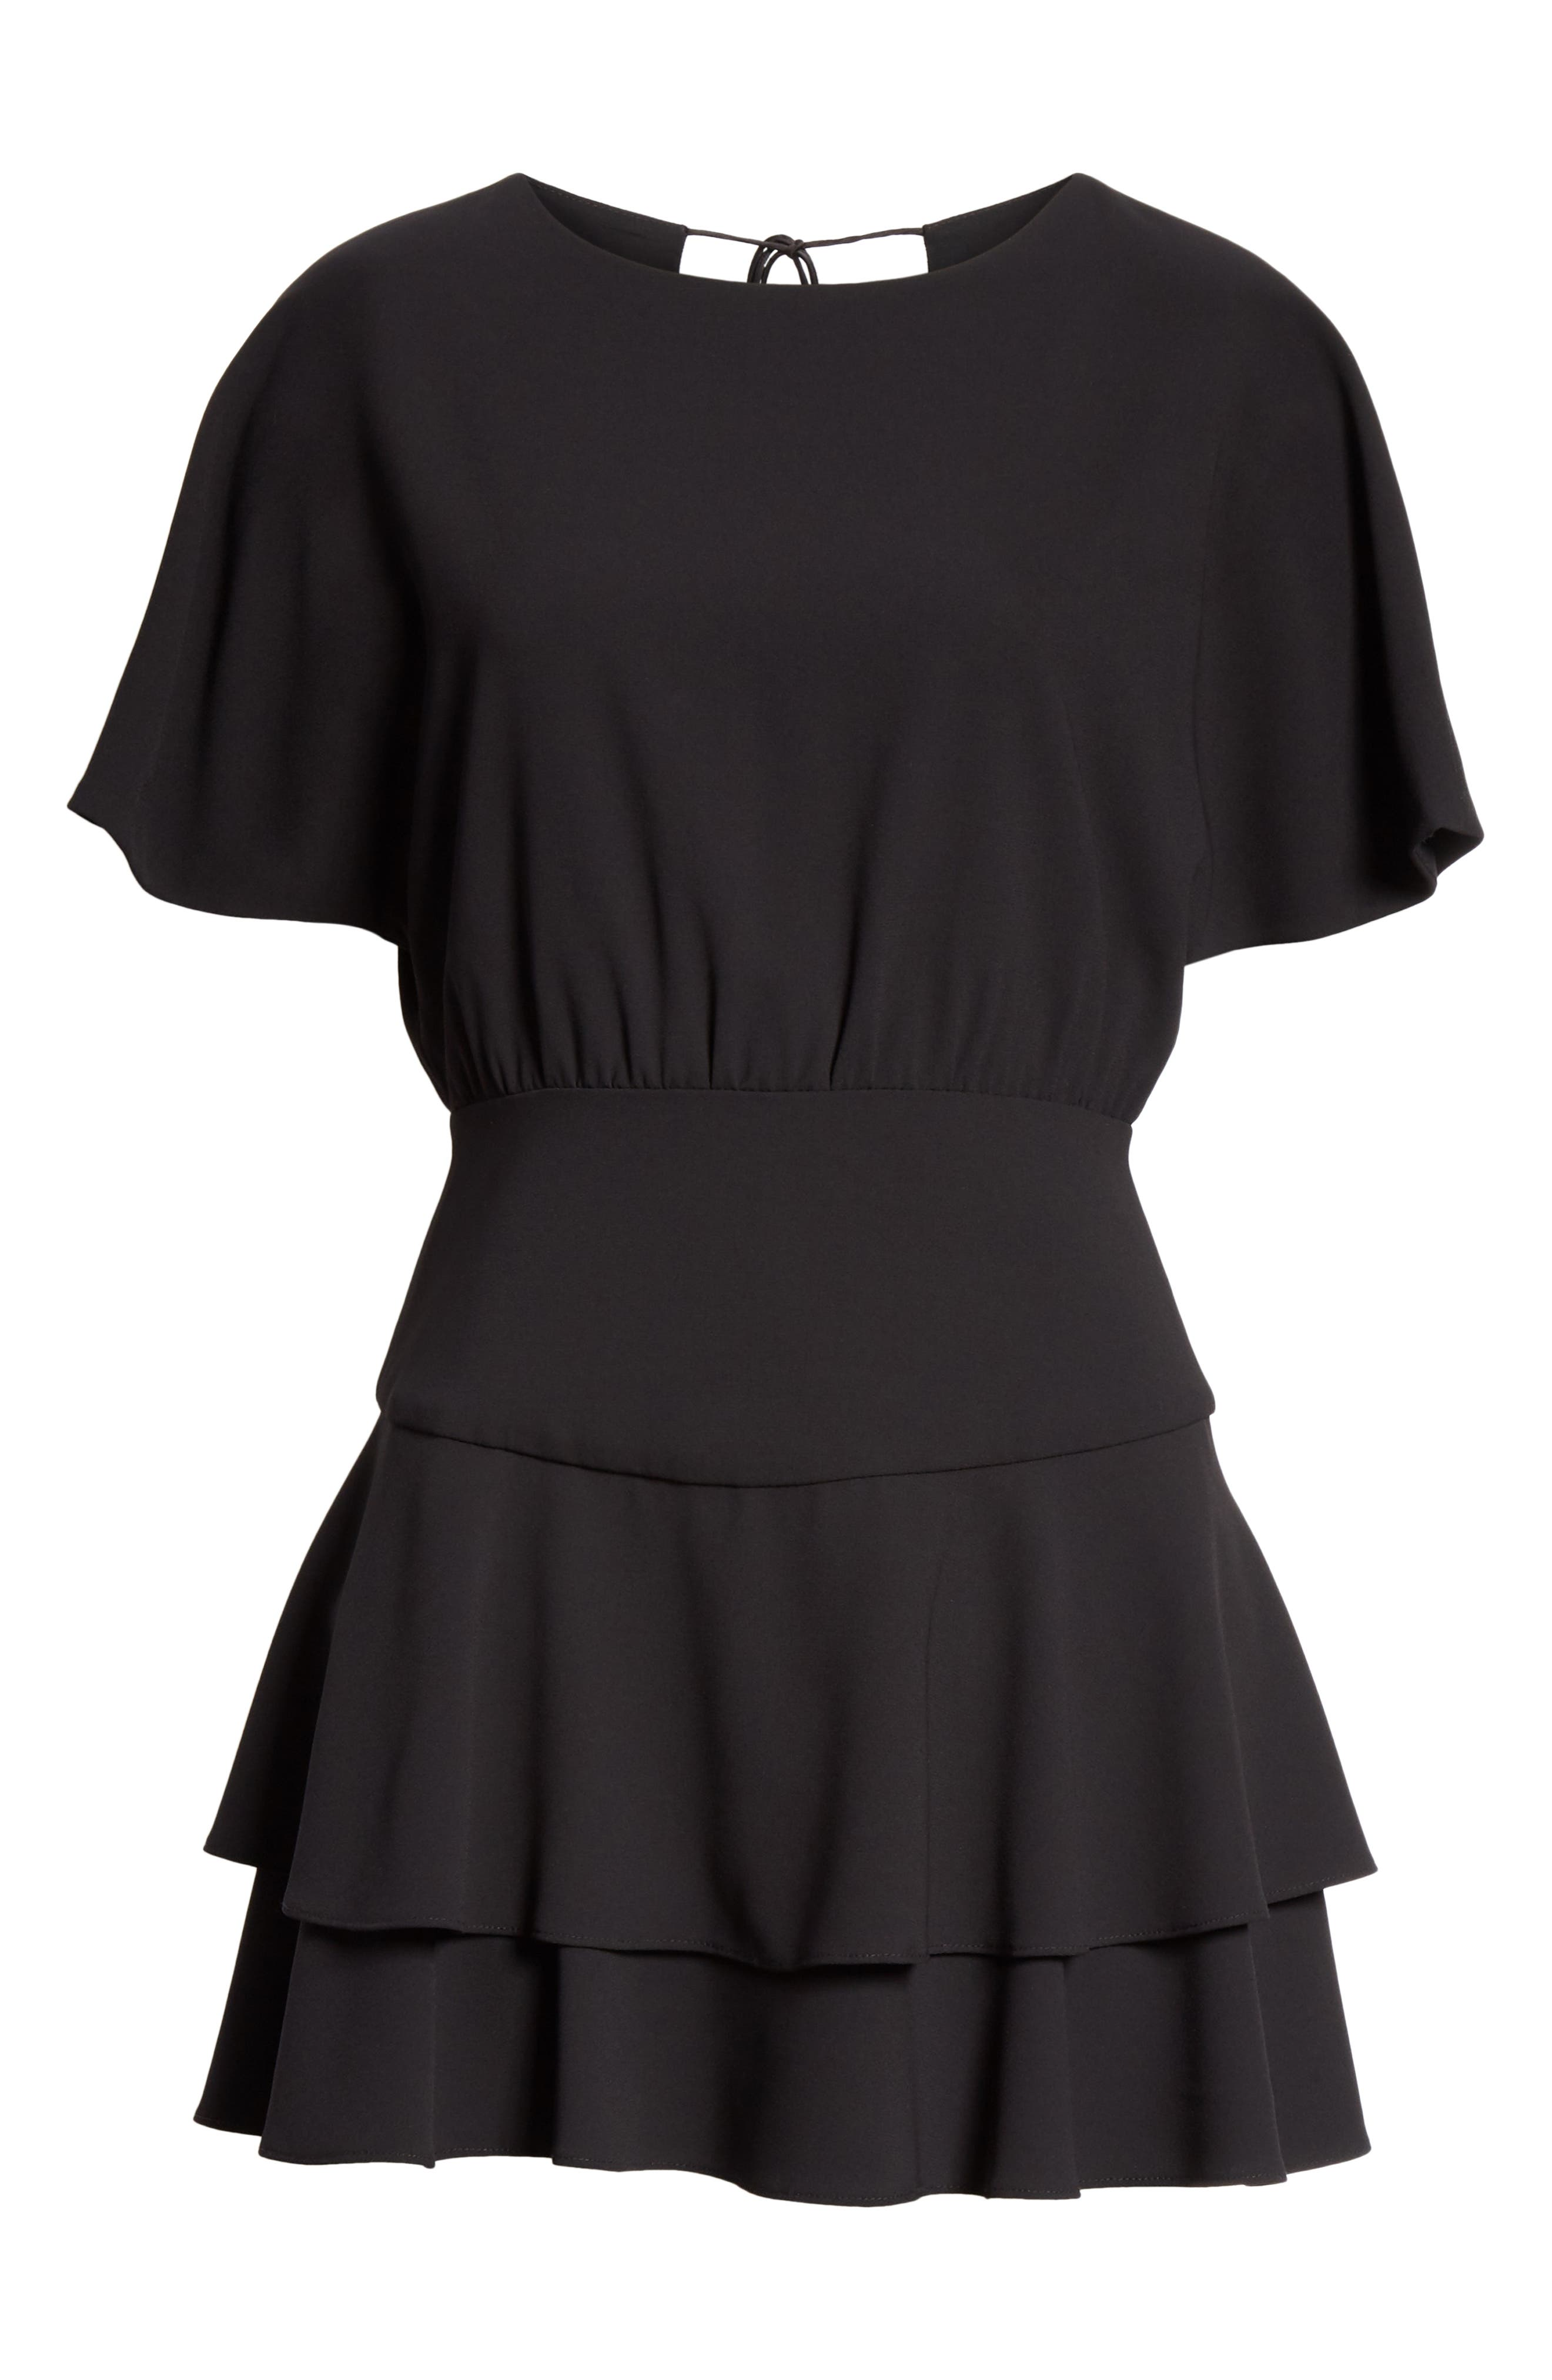 Palmira Tiered Fit & Flare Minidress,                             Alternate thumbnail 7, color,                             001